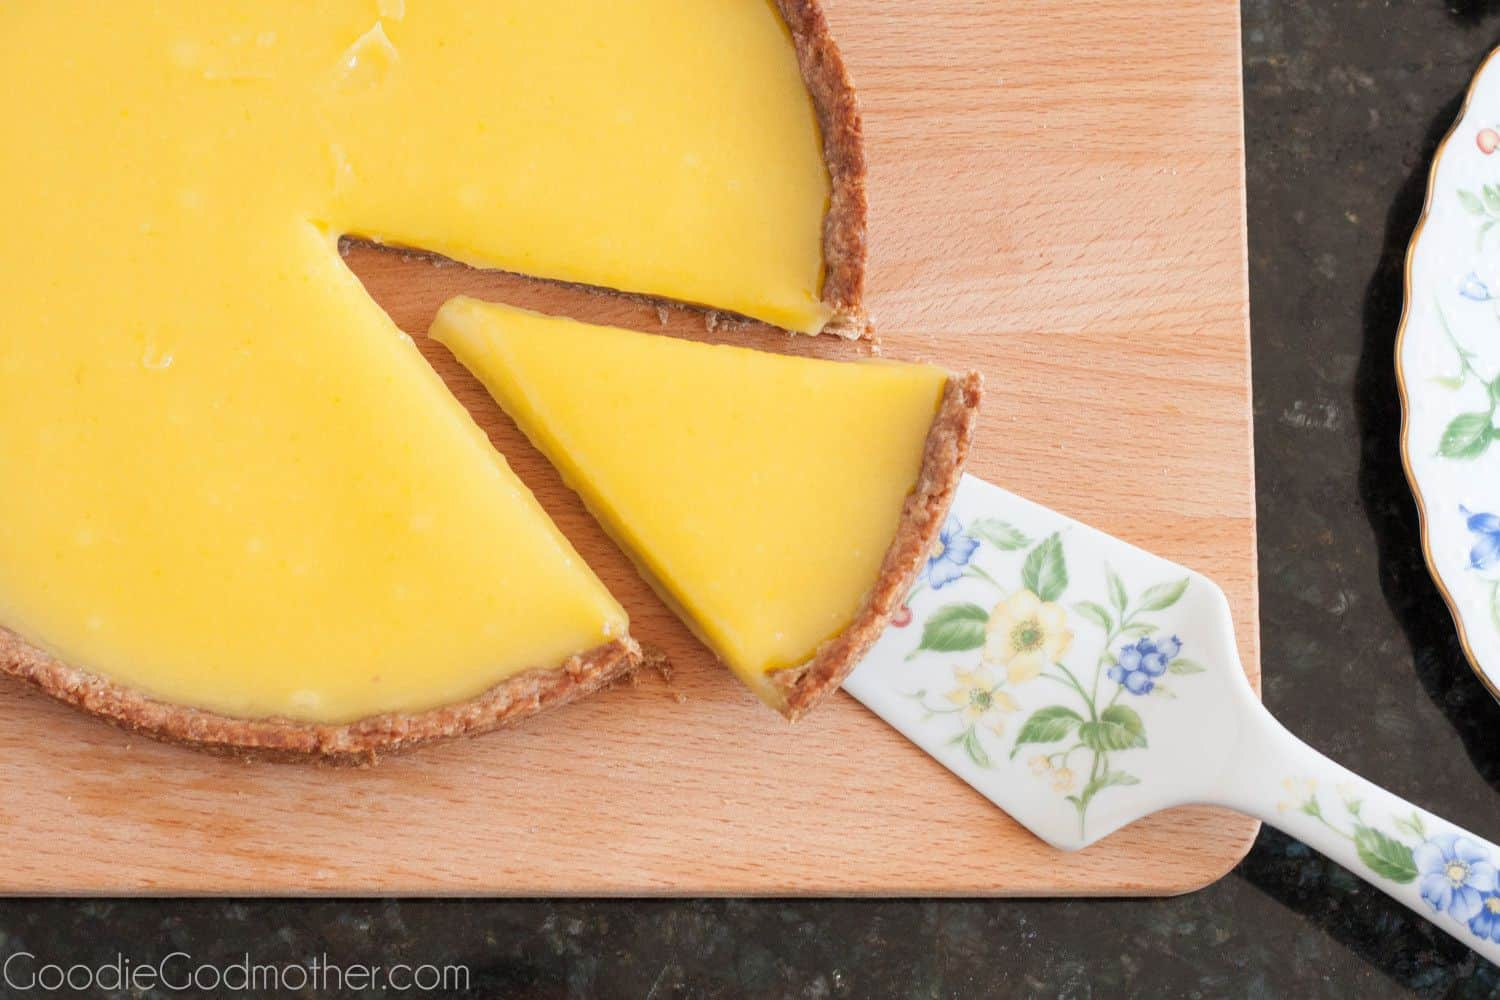 Key lime tart is an easy, make ahead, key lime dessert with a refreshing sweet